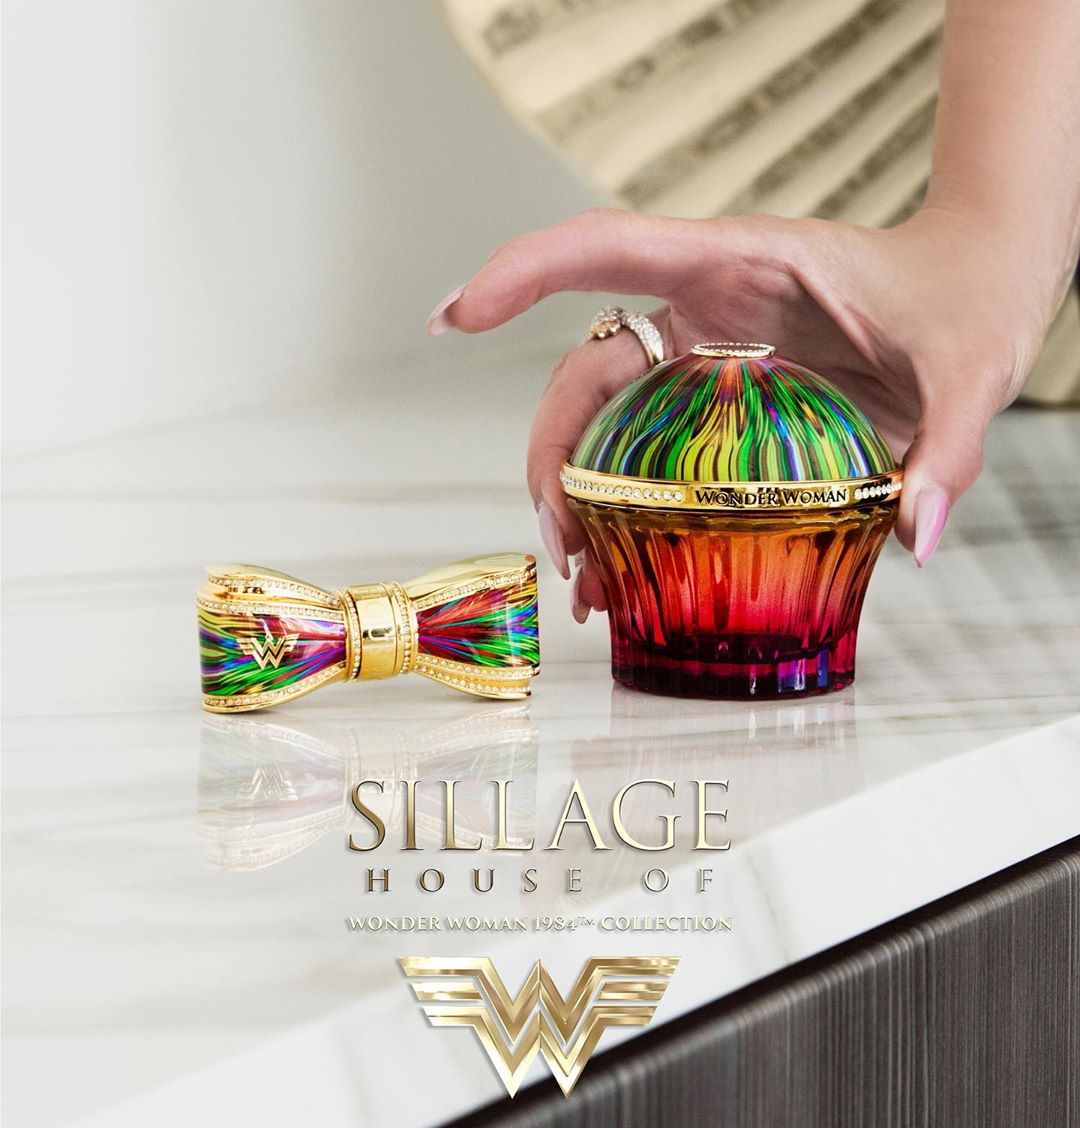 Wonder Woman 1984 Limited Edition Collection. Source: House of Sillage